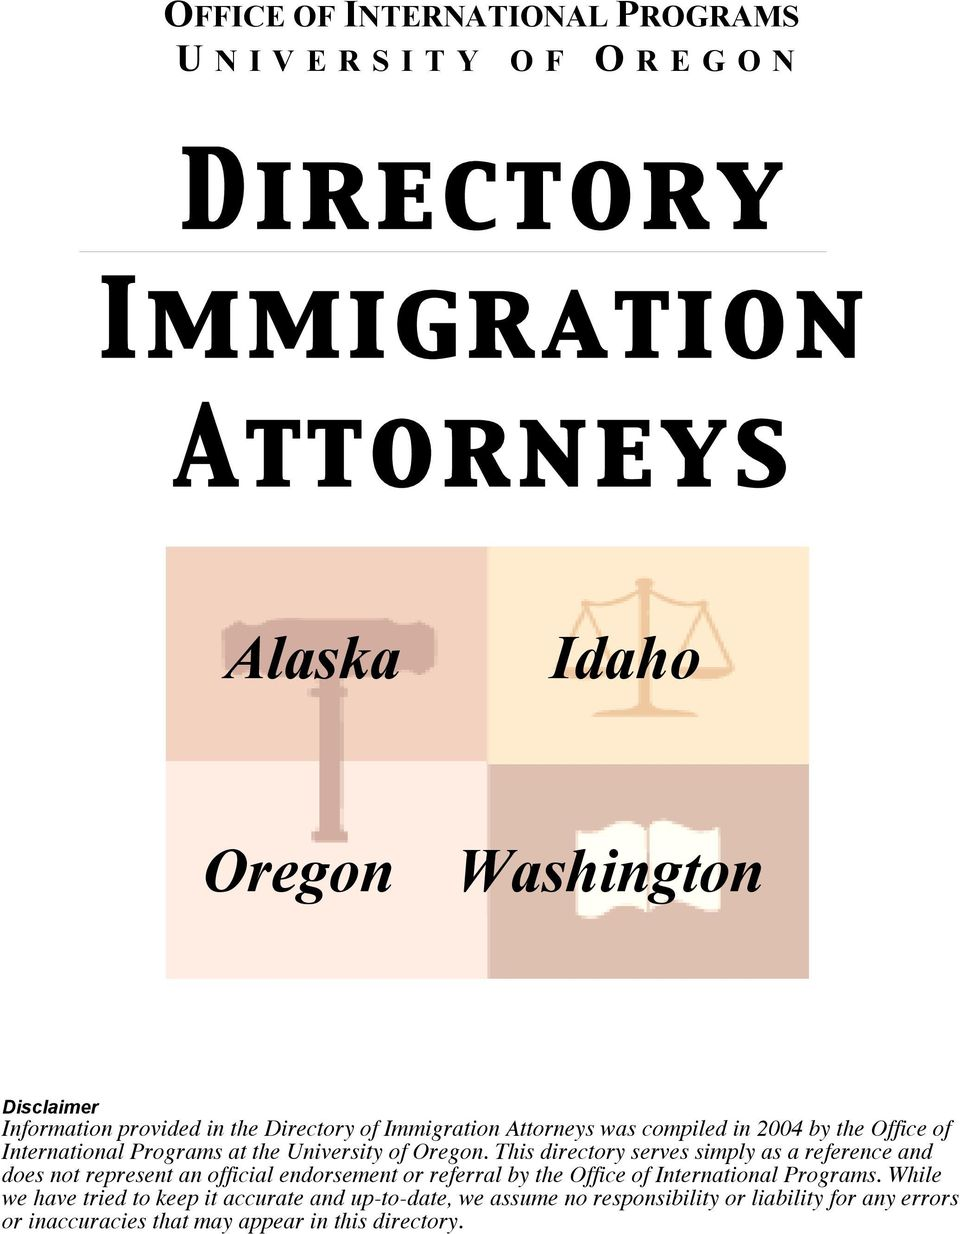 Oregon. This directory serves simply as a reference and does not represent an official endorsement or referral by the Office of International Programs.